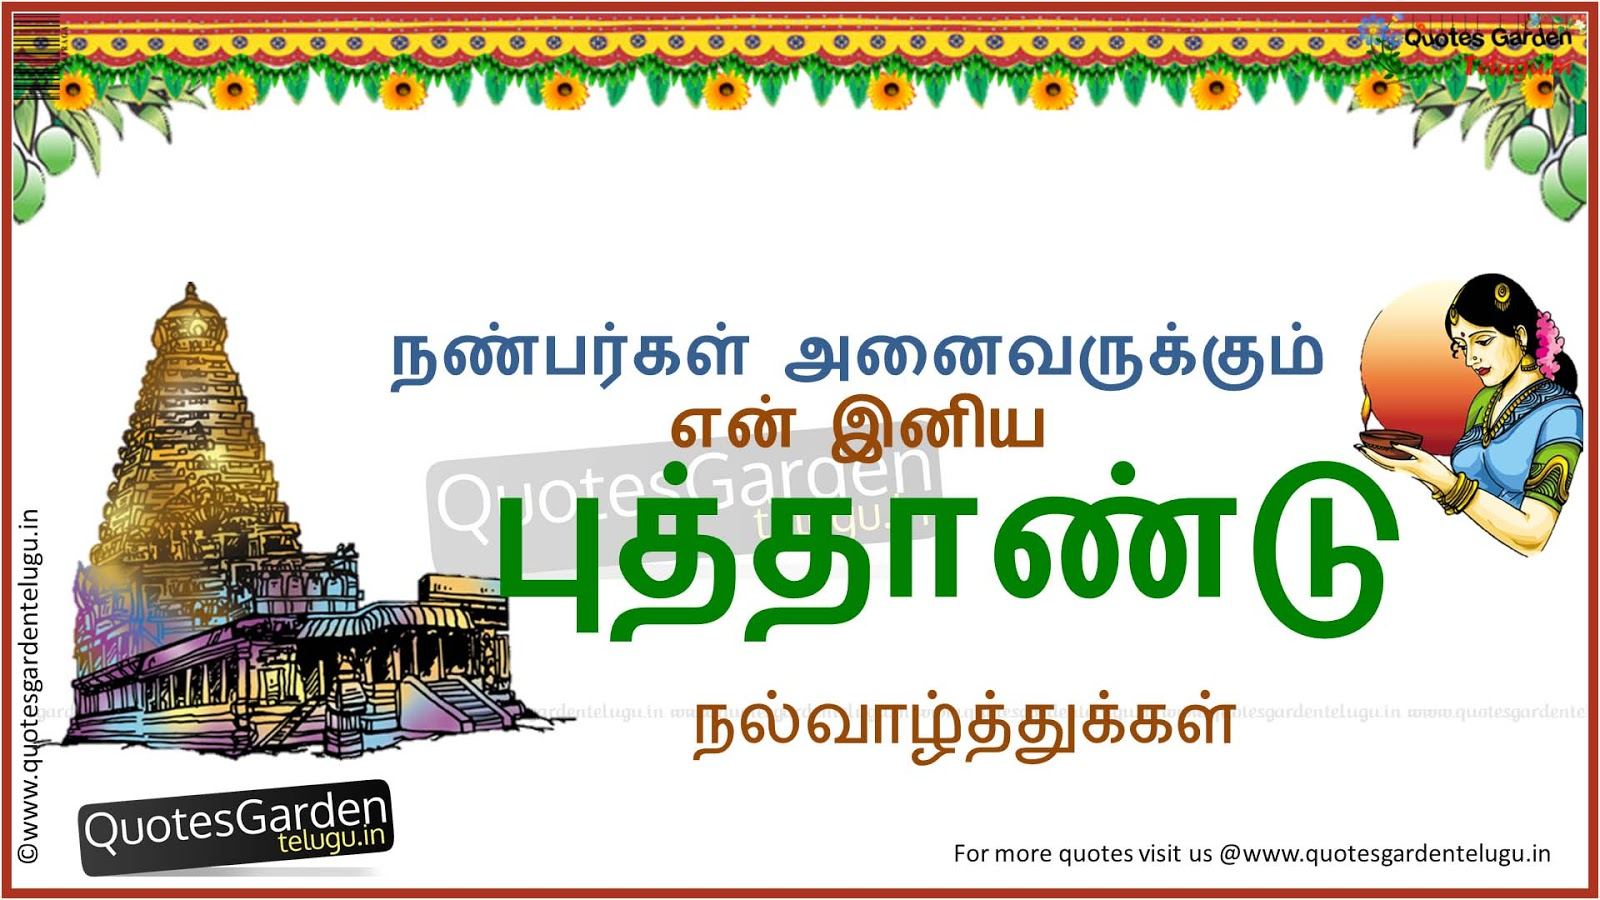 Tamil new year greetings quotes wishes wallpapers quotes garden tamil new year greetings quotes wishes wallpapers m4hsunfo